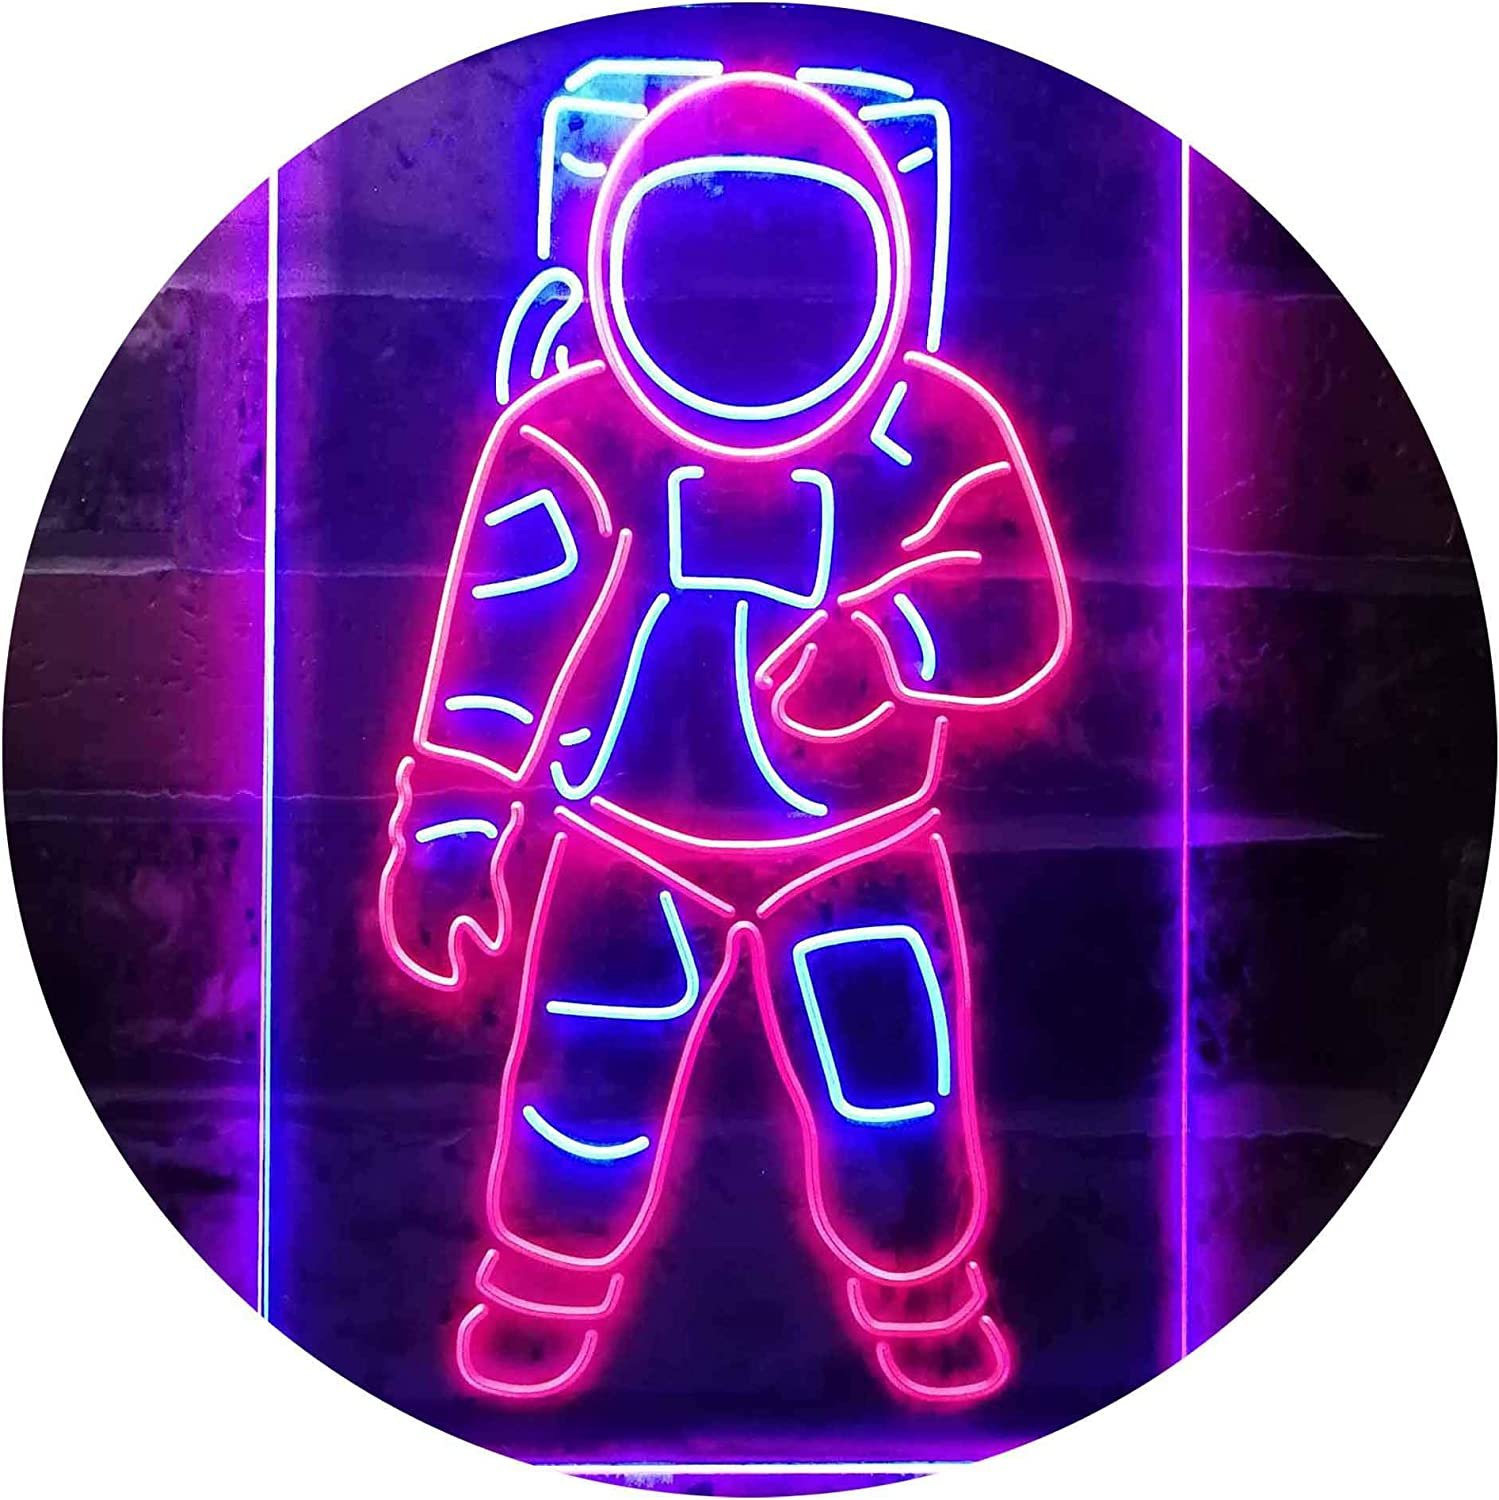 Astronaut for Kid Bedroom Dual Color LED Neon Sign st6-i3359